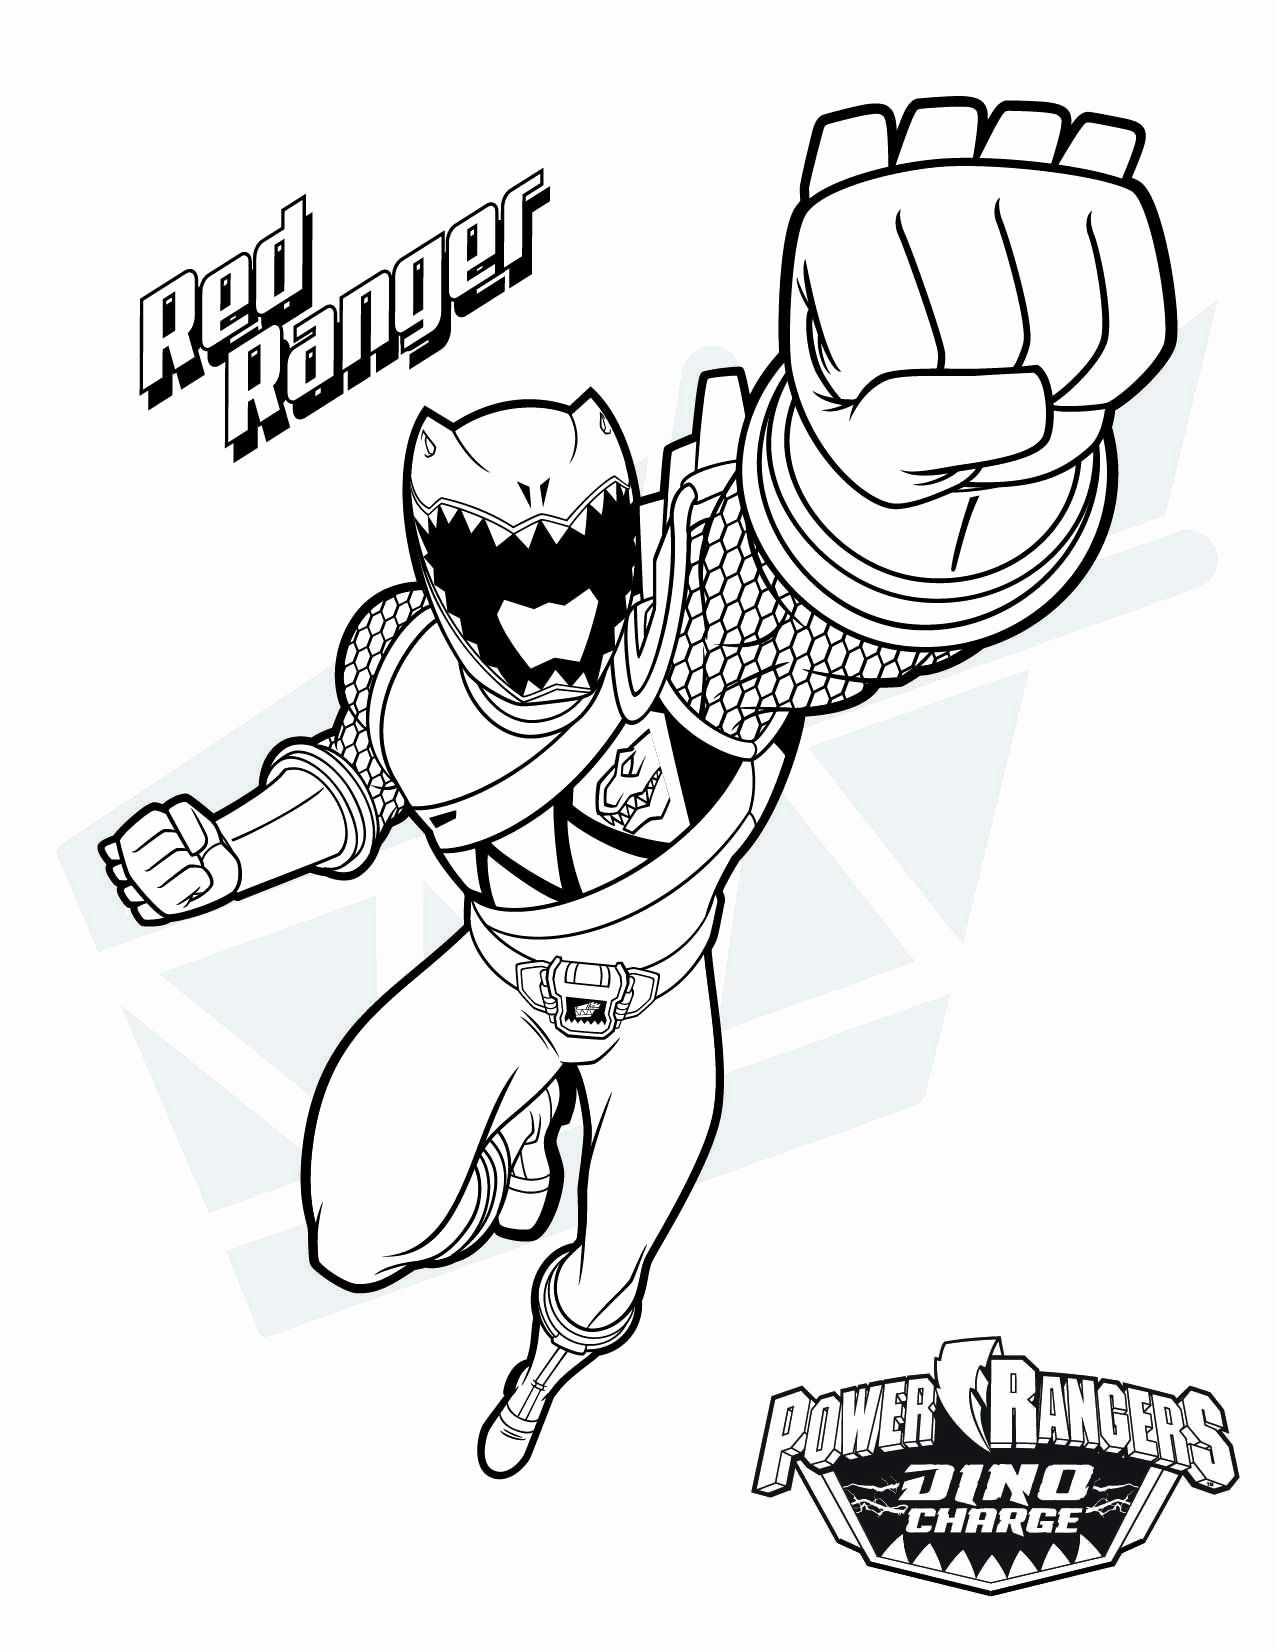 Power Rangers Coloring Book Best Of Pin By Power Rangers On Power Rangers Colorin In 2020 Power Rangers Coloring Pages Coloring Pages To Print Halloween Coloring Pages